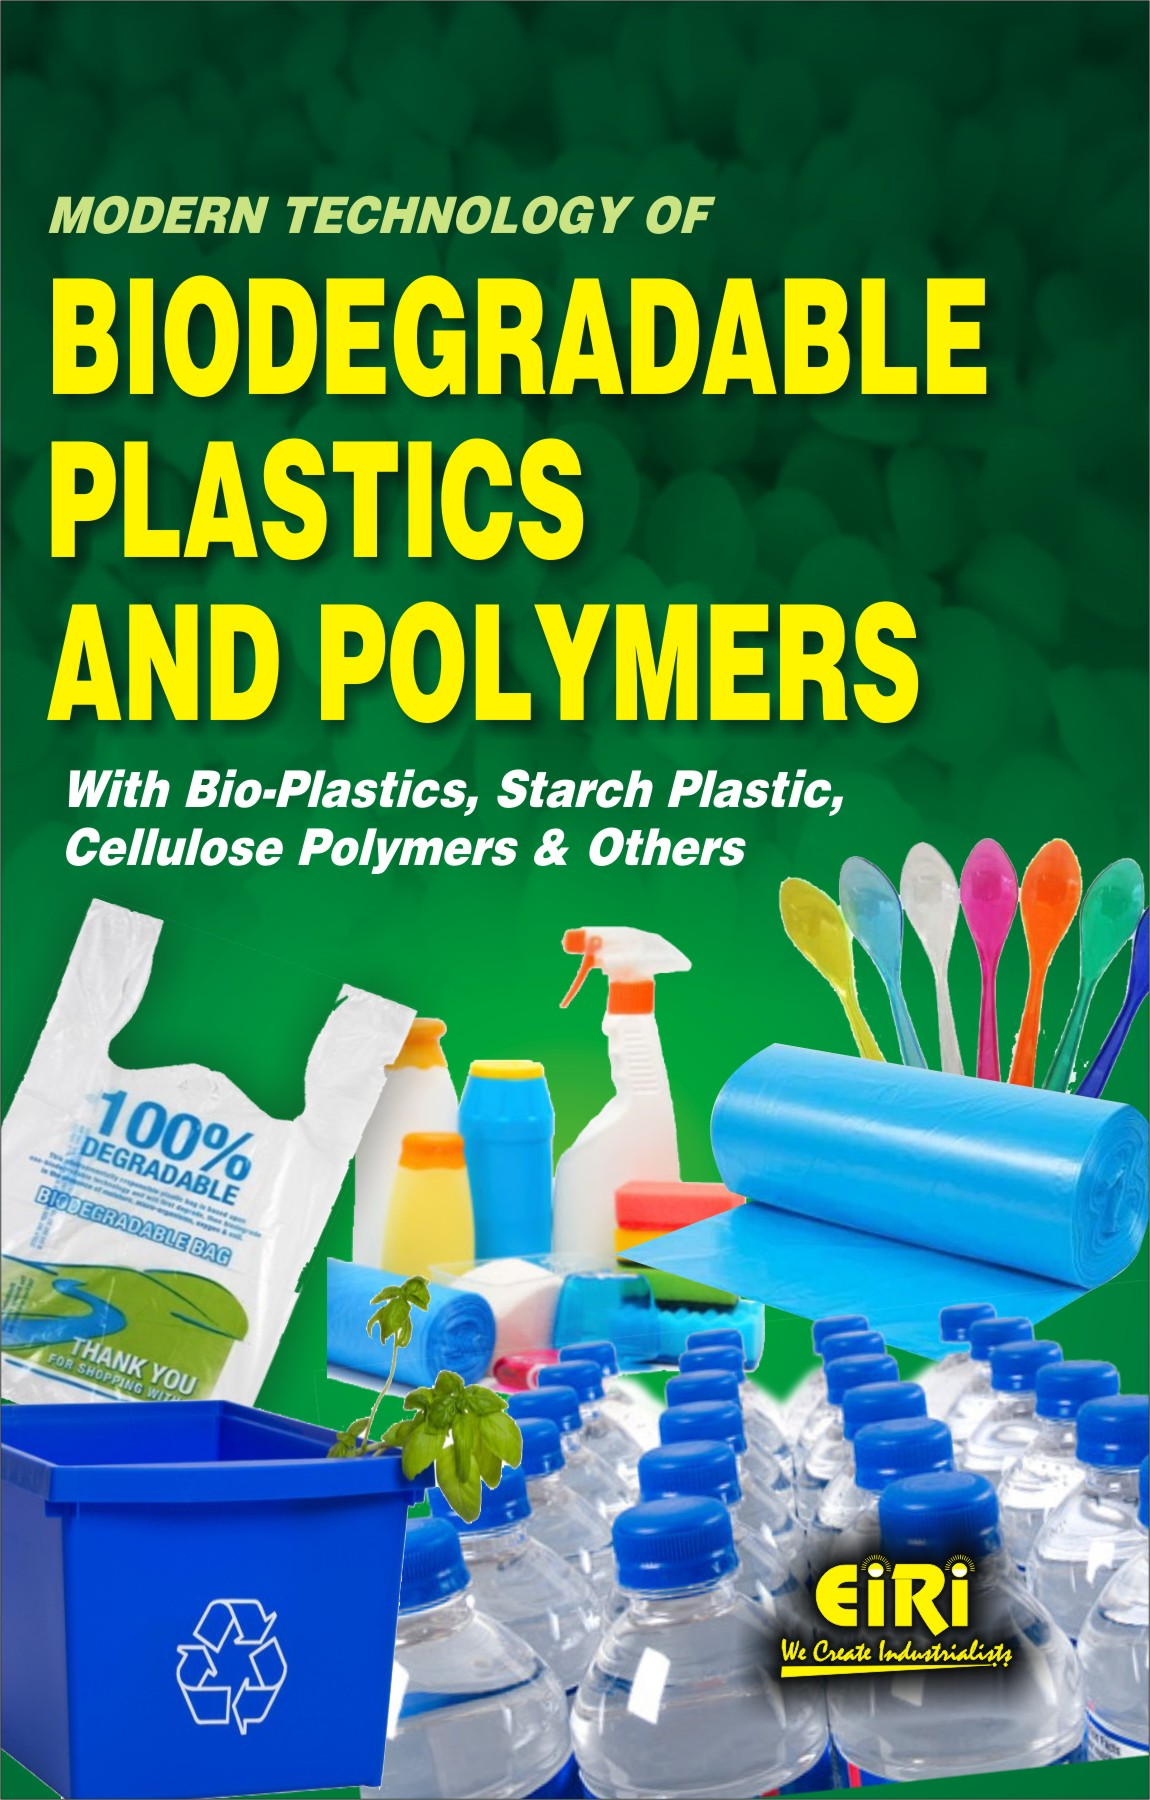 Modern Technology of Biodegradable Plastics and Polymers with Processes  (Bio-Plastic, Starch Plastics, Cellulose Polymers and Others)